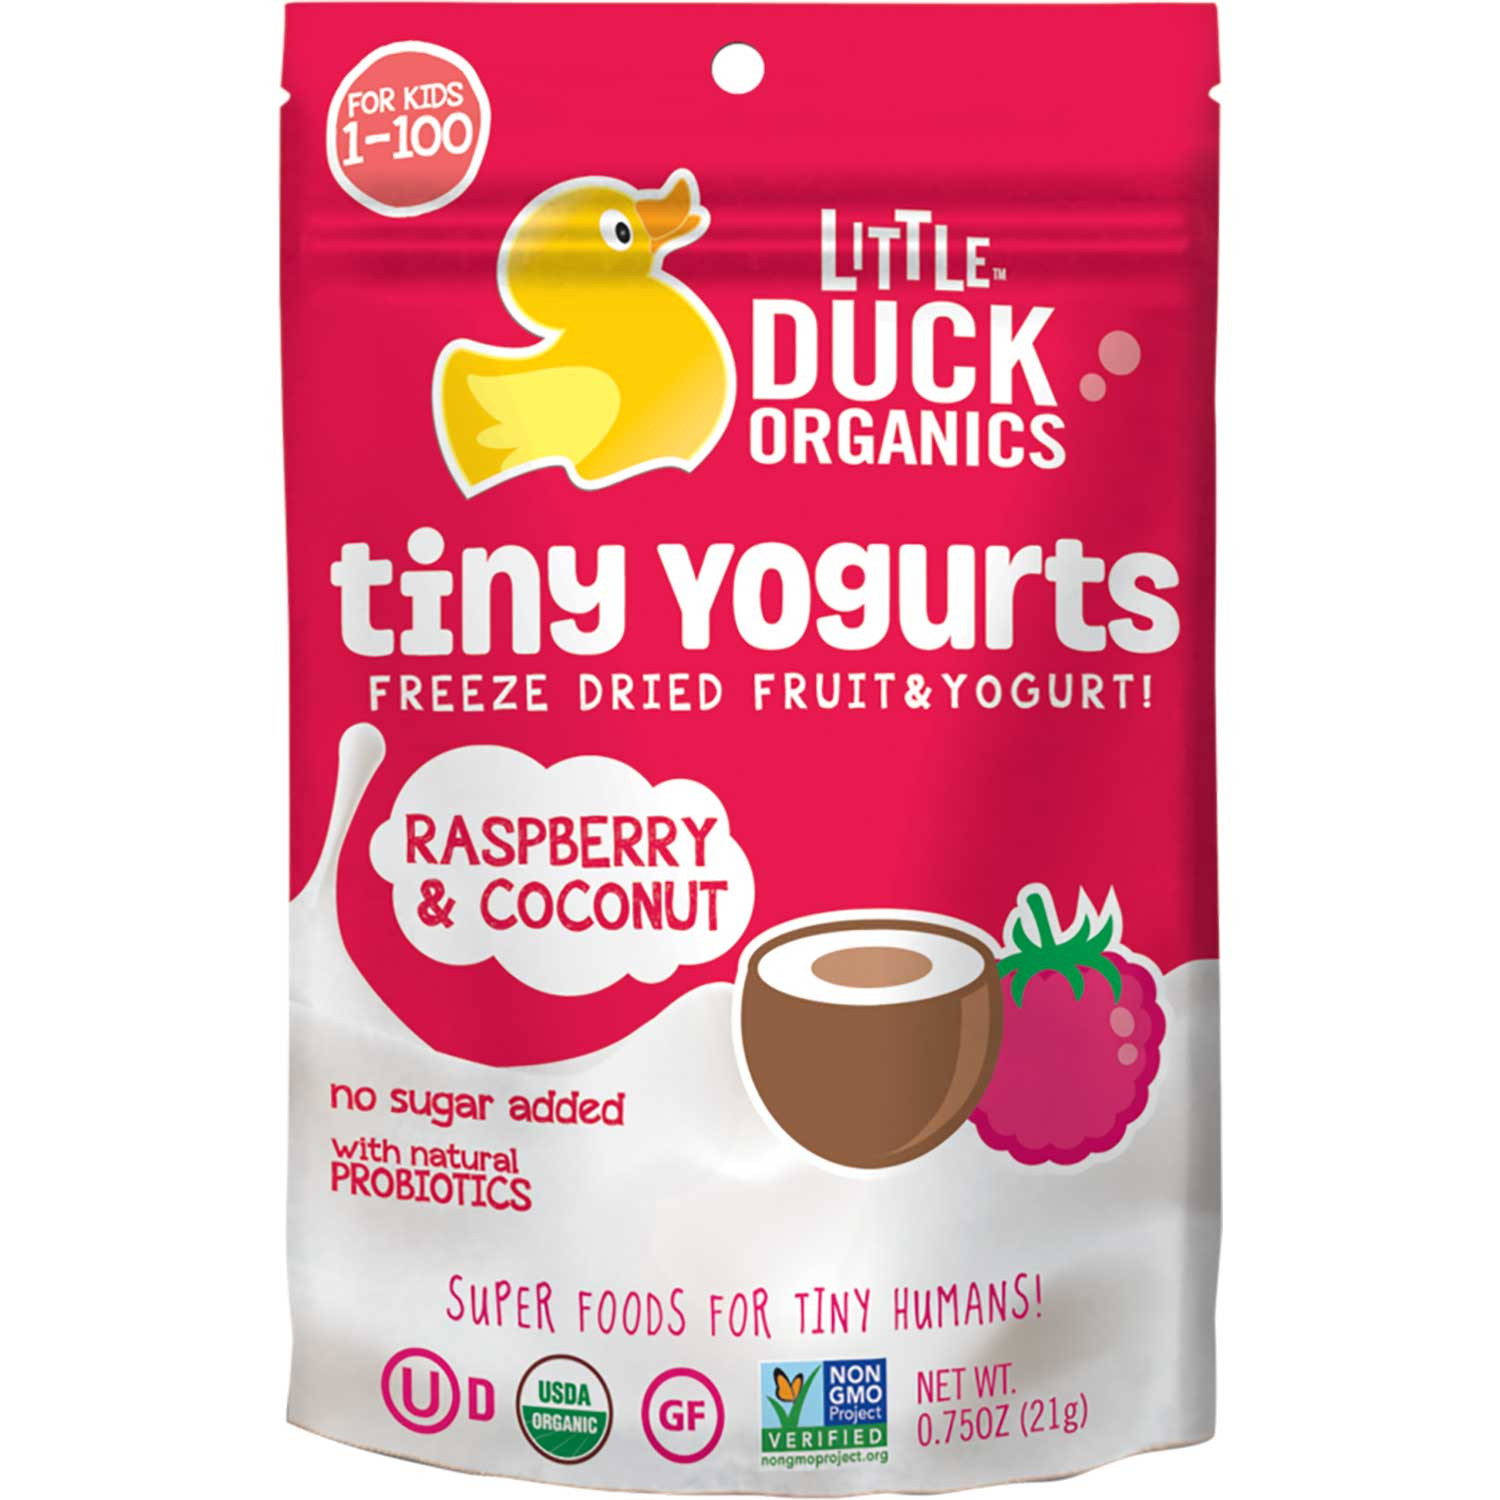 Little Duck Organics Tiny Yogurts - Raspberry & Coconut, 21g